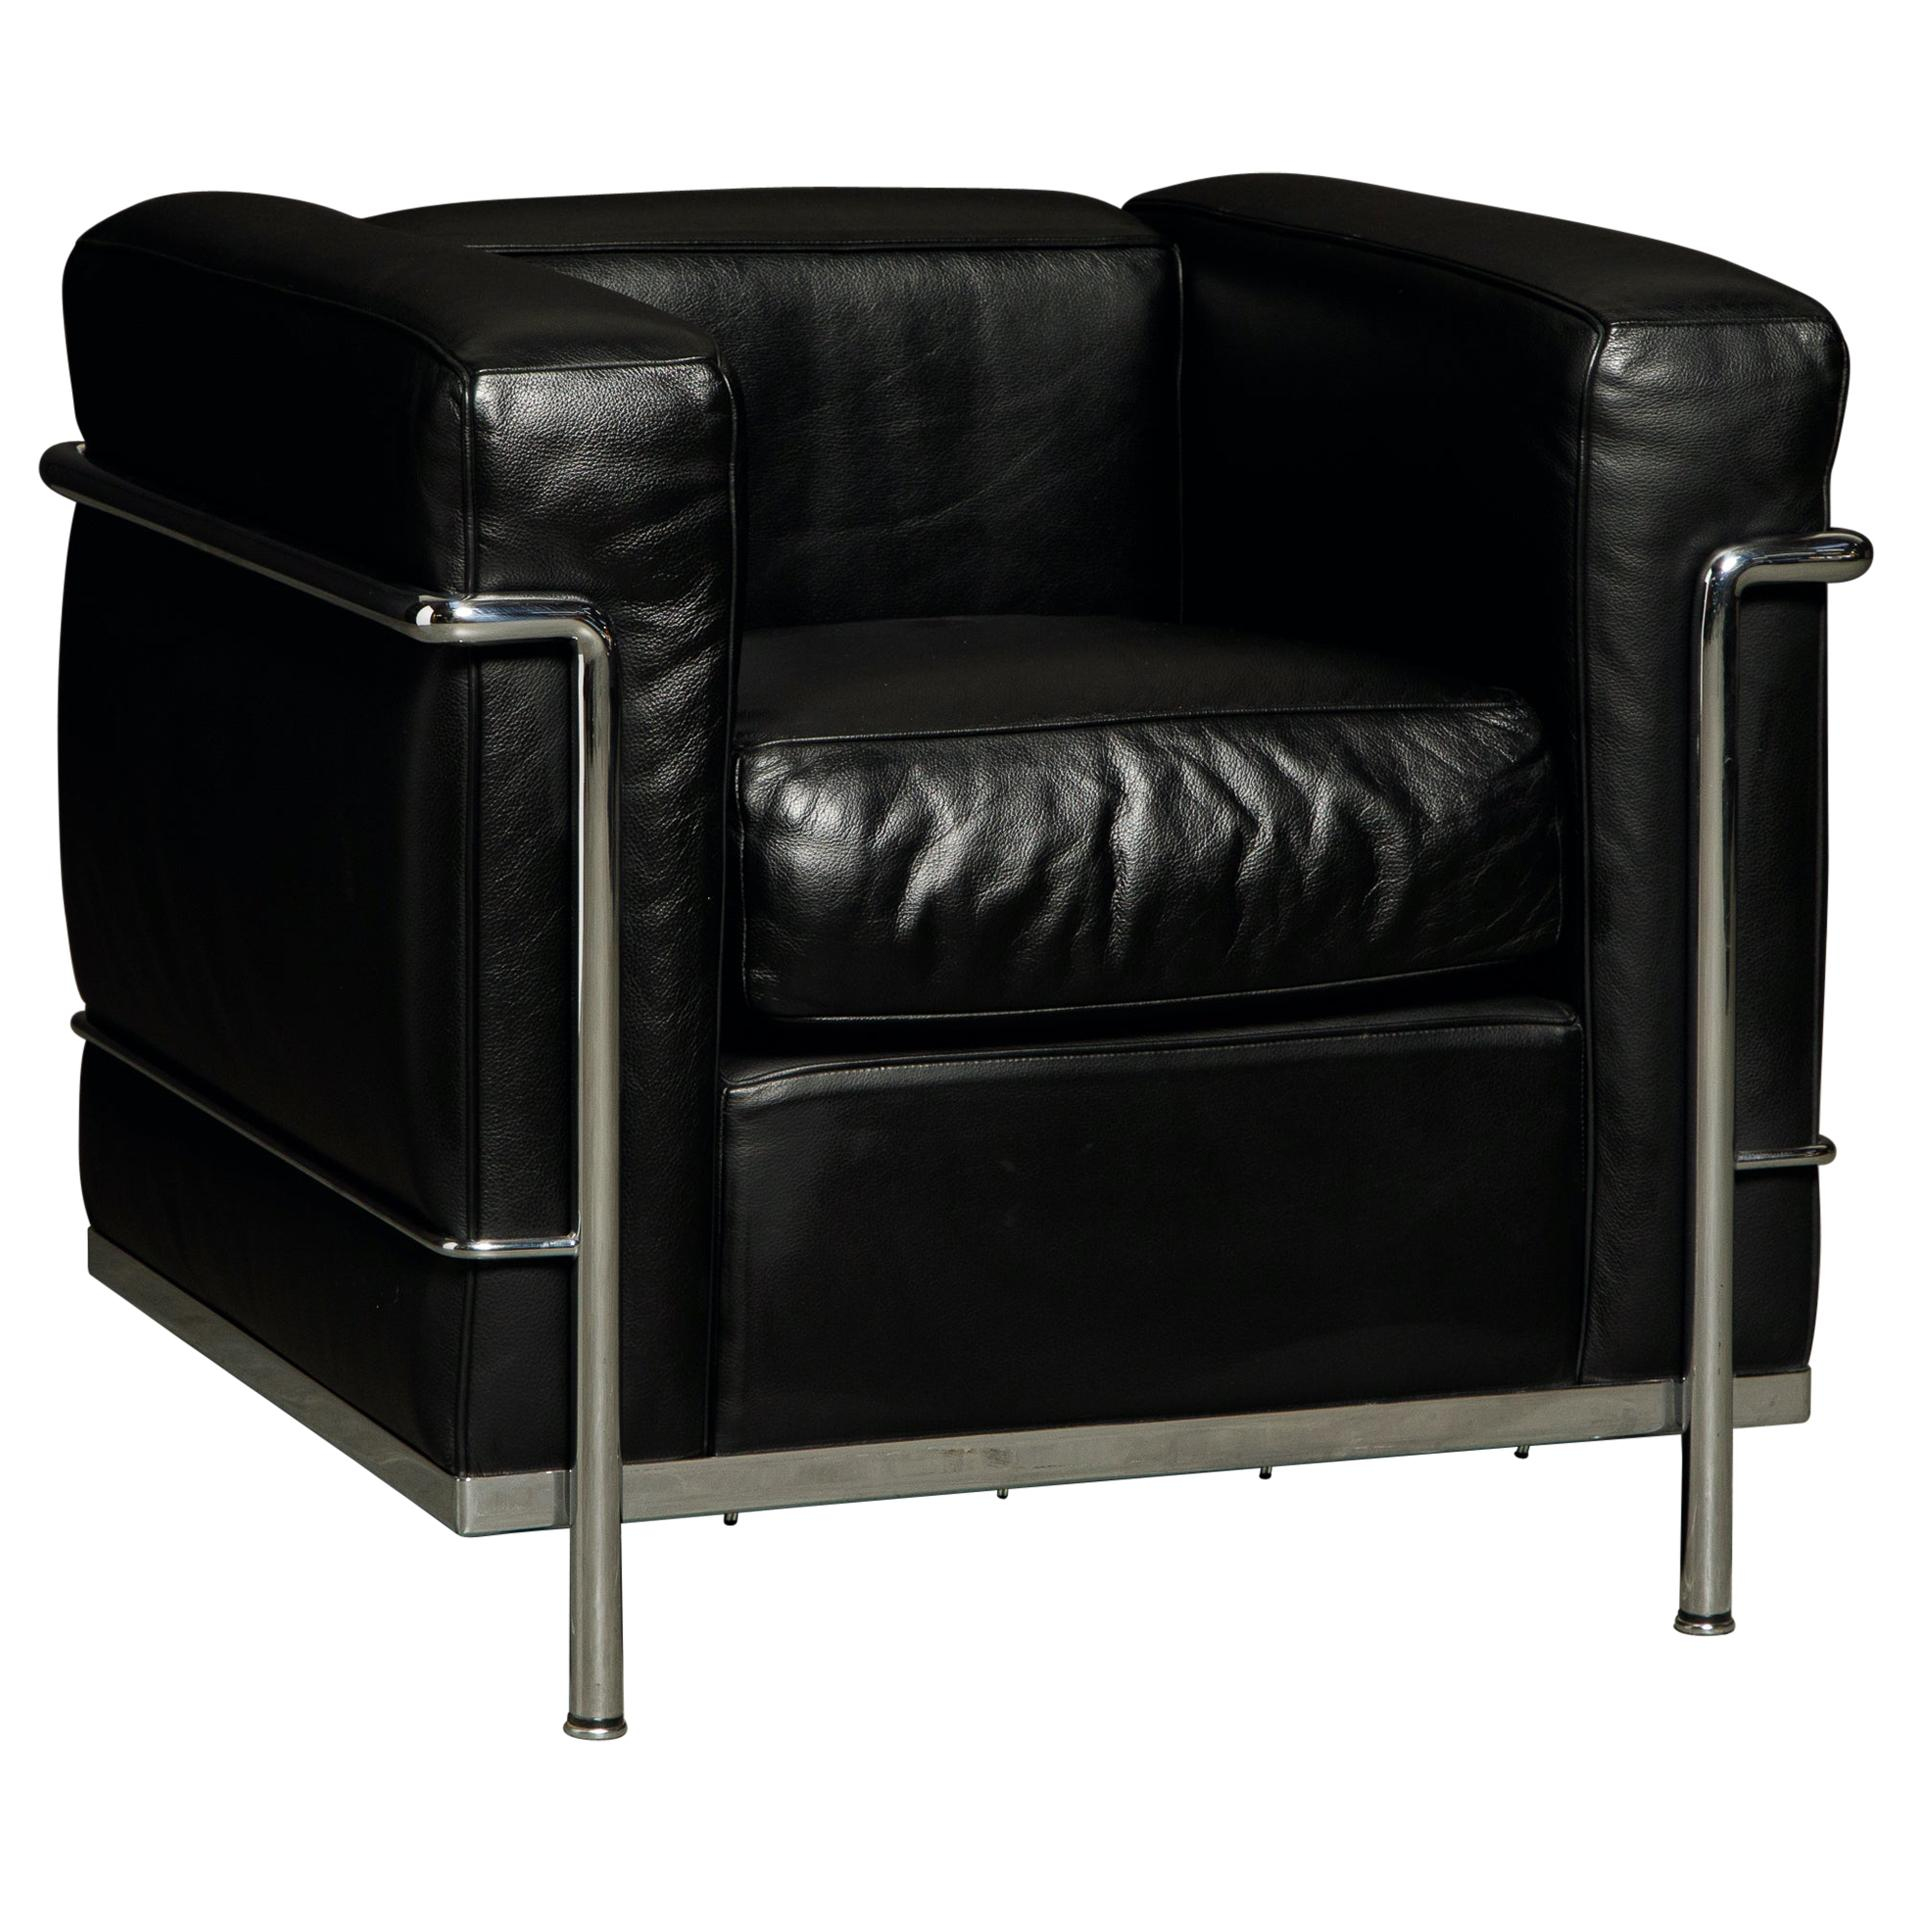 'LC2' Black Leather and Chrome Club Chair by Le Corbusier for Cassina, Signed